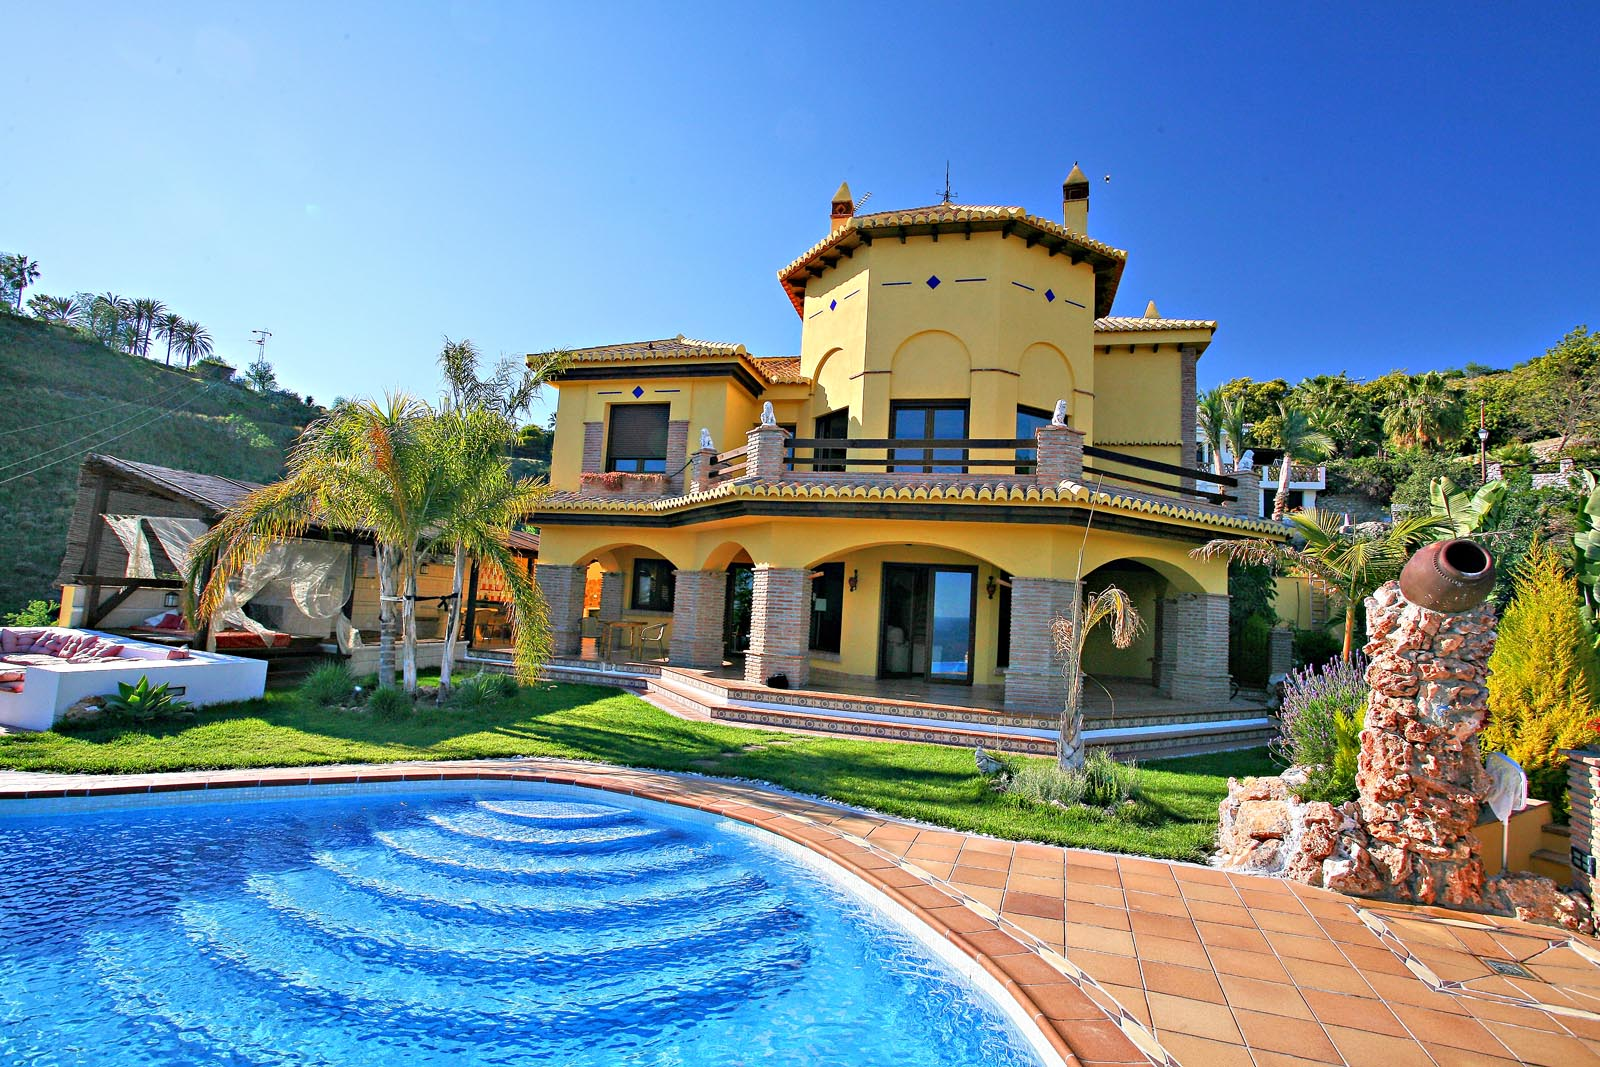 Holiday Villas In Spain Spanish Villa Holidays Direct From The Owner